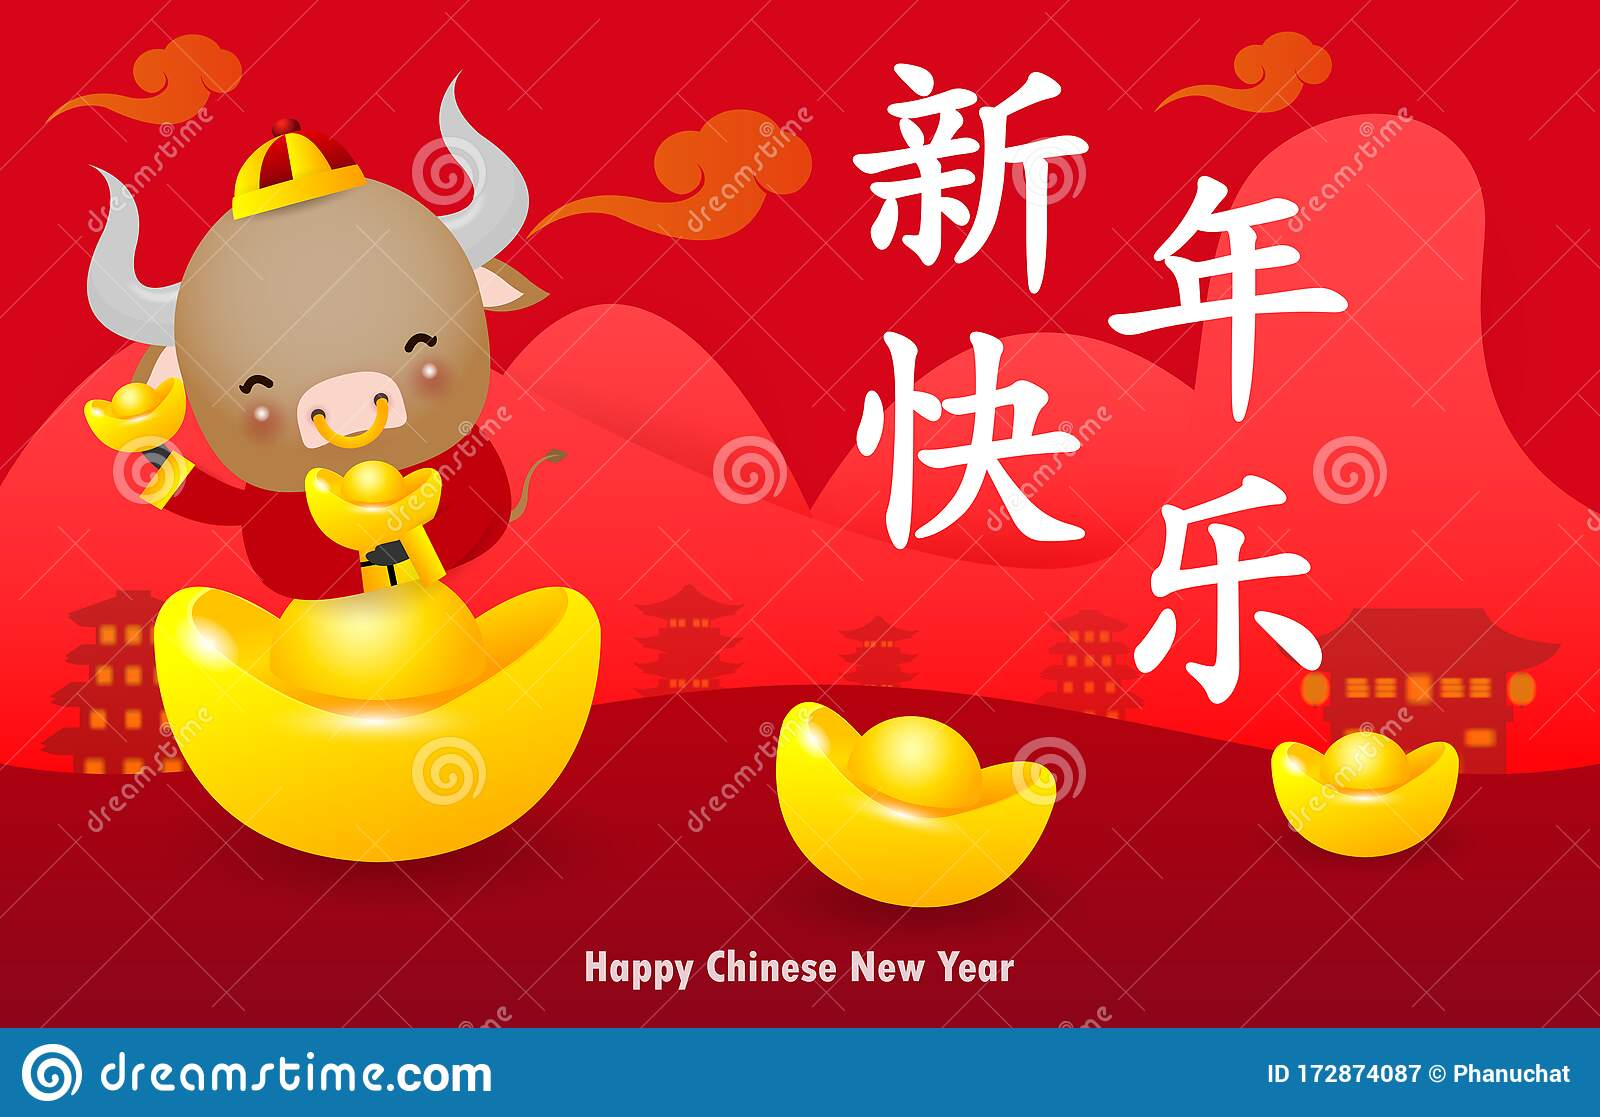 Happy Chinese New Year 2021 Greeting Card Little Ox Holding Chinese Gold Year Of The Ox Zodiac Cartoon Isolated Vector Stock Vector Illustration Of Celebration China 172874087